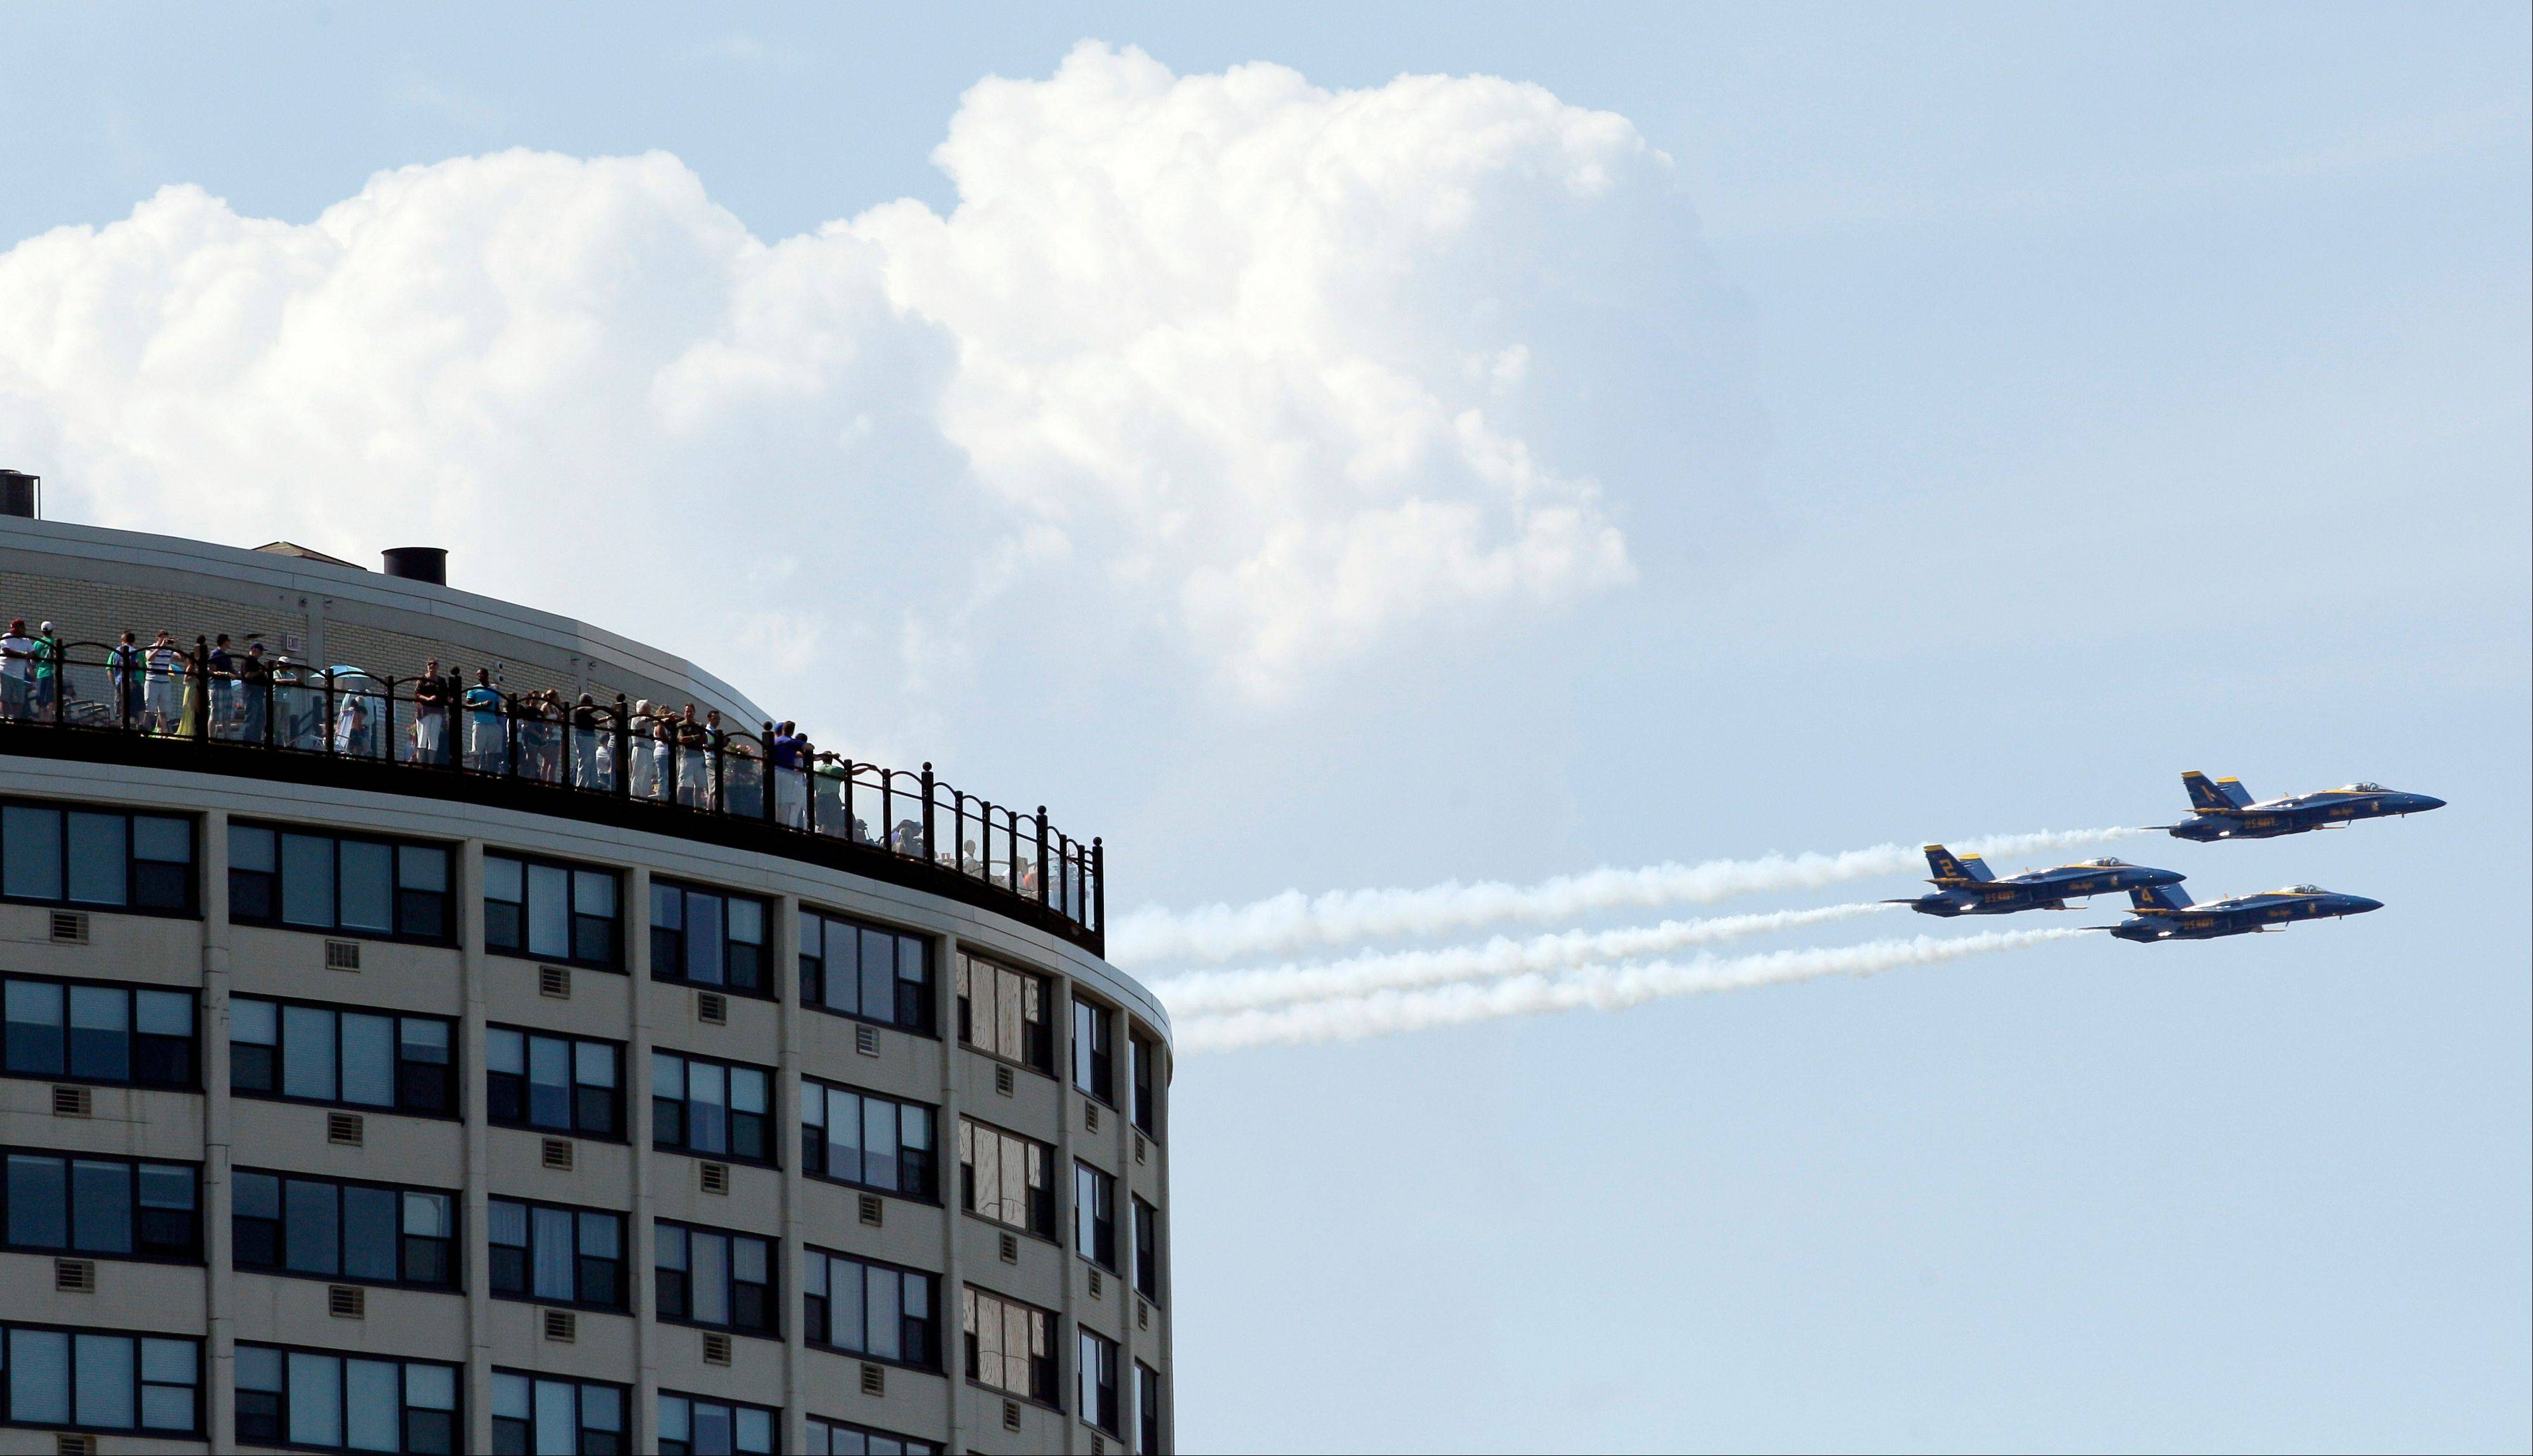 People watch the U.S. Navy Blue Angels perform over Lake Michigan during the Chicago Air and Water Show on Sunday, Aug. 19, 2012, in Chicago.